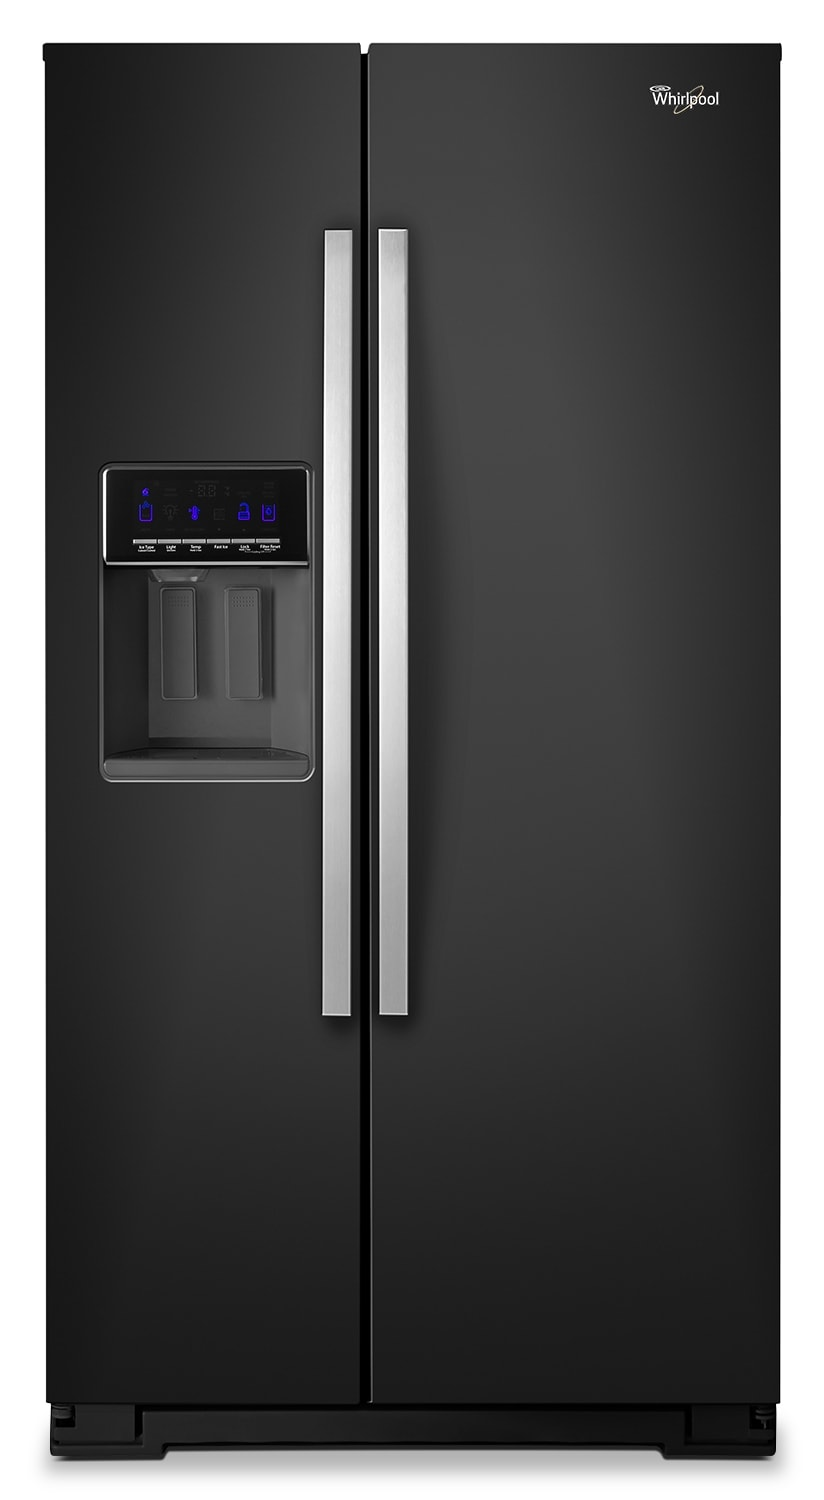 Refrigerators and Freezers - Whirlpool 26 Cu. Ft. Side-by-Side Refrigerator – Black Ice